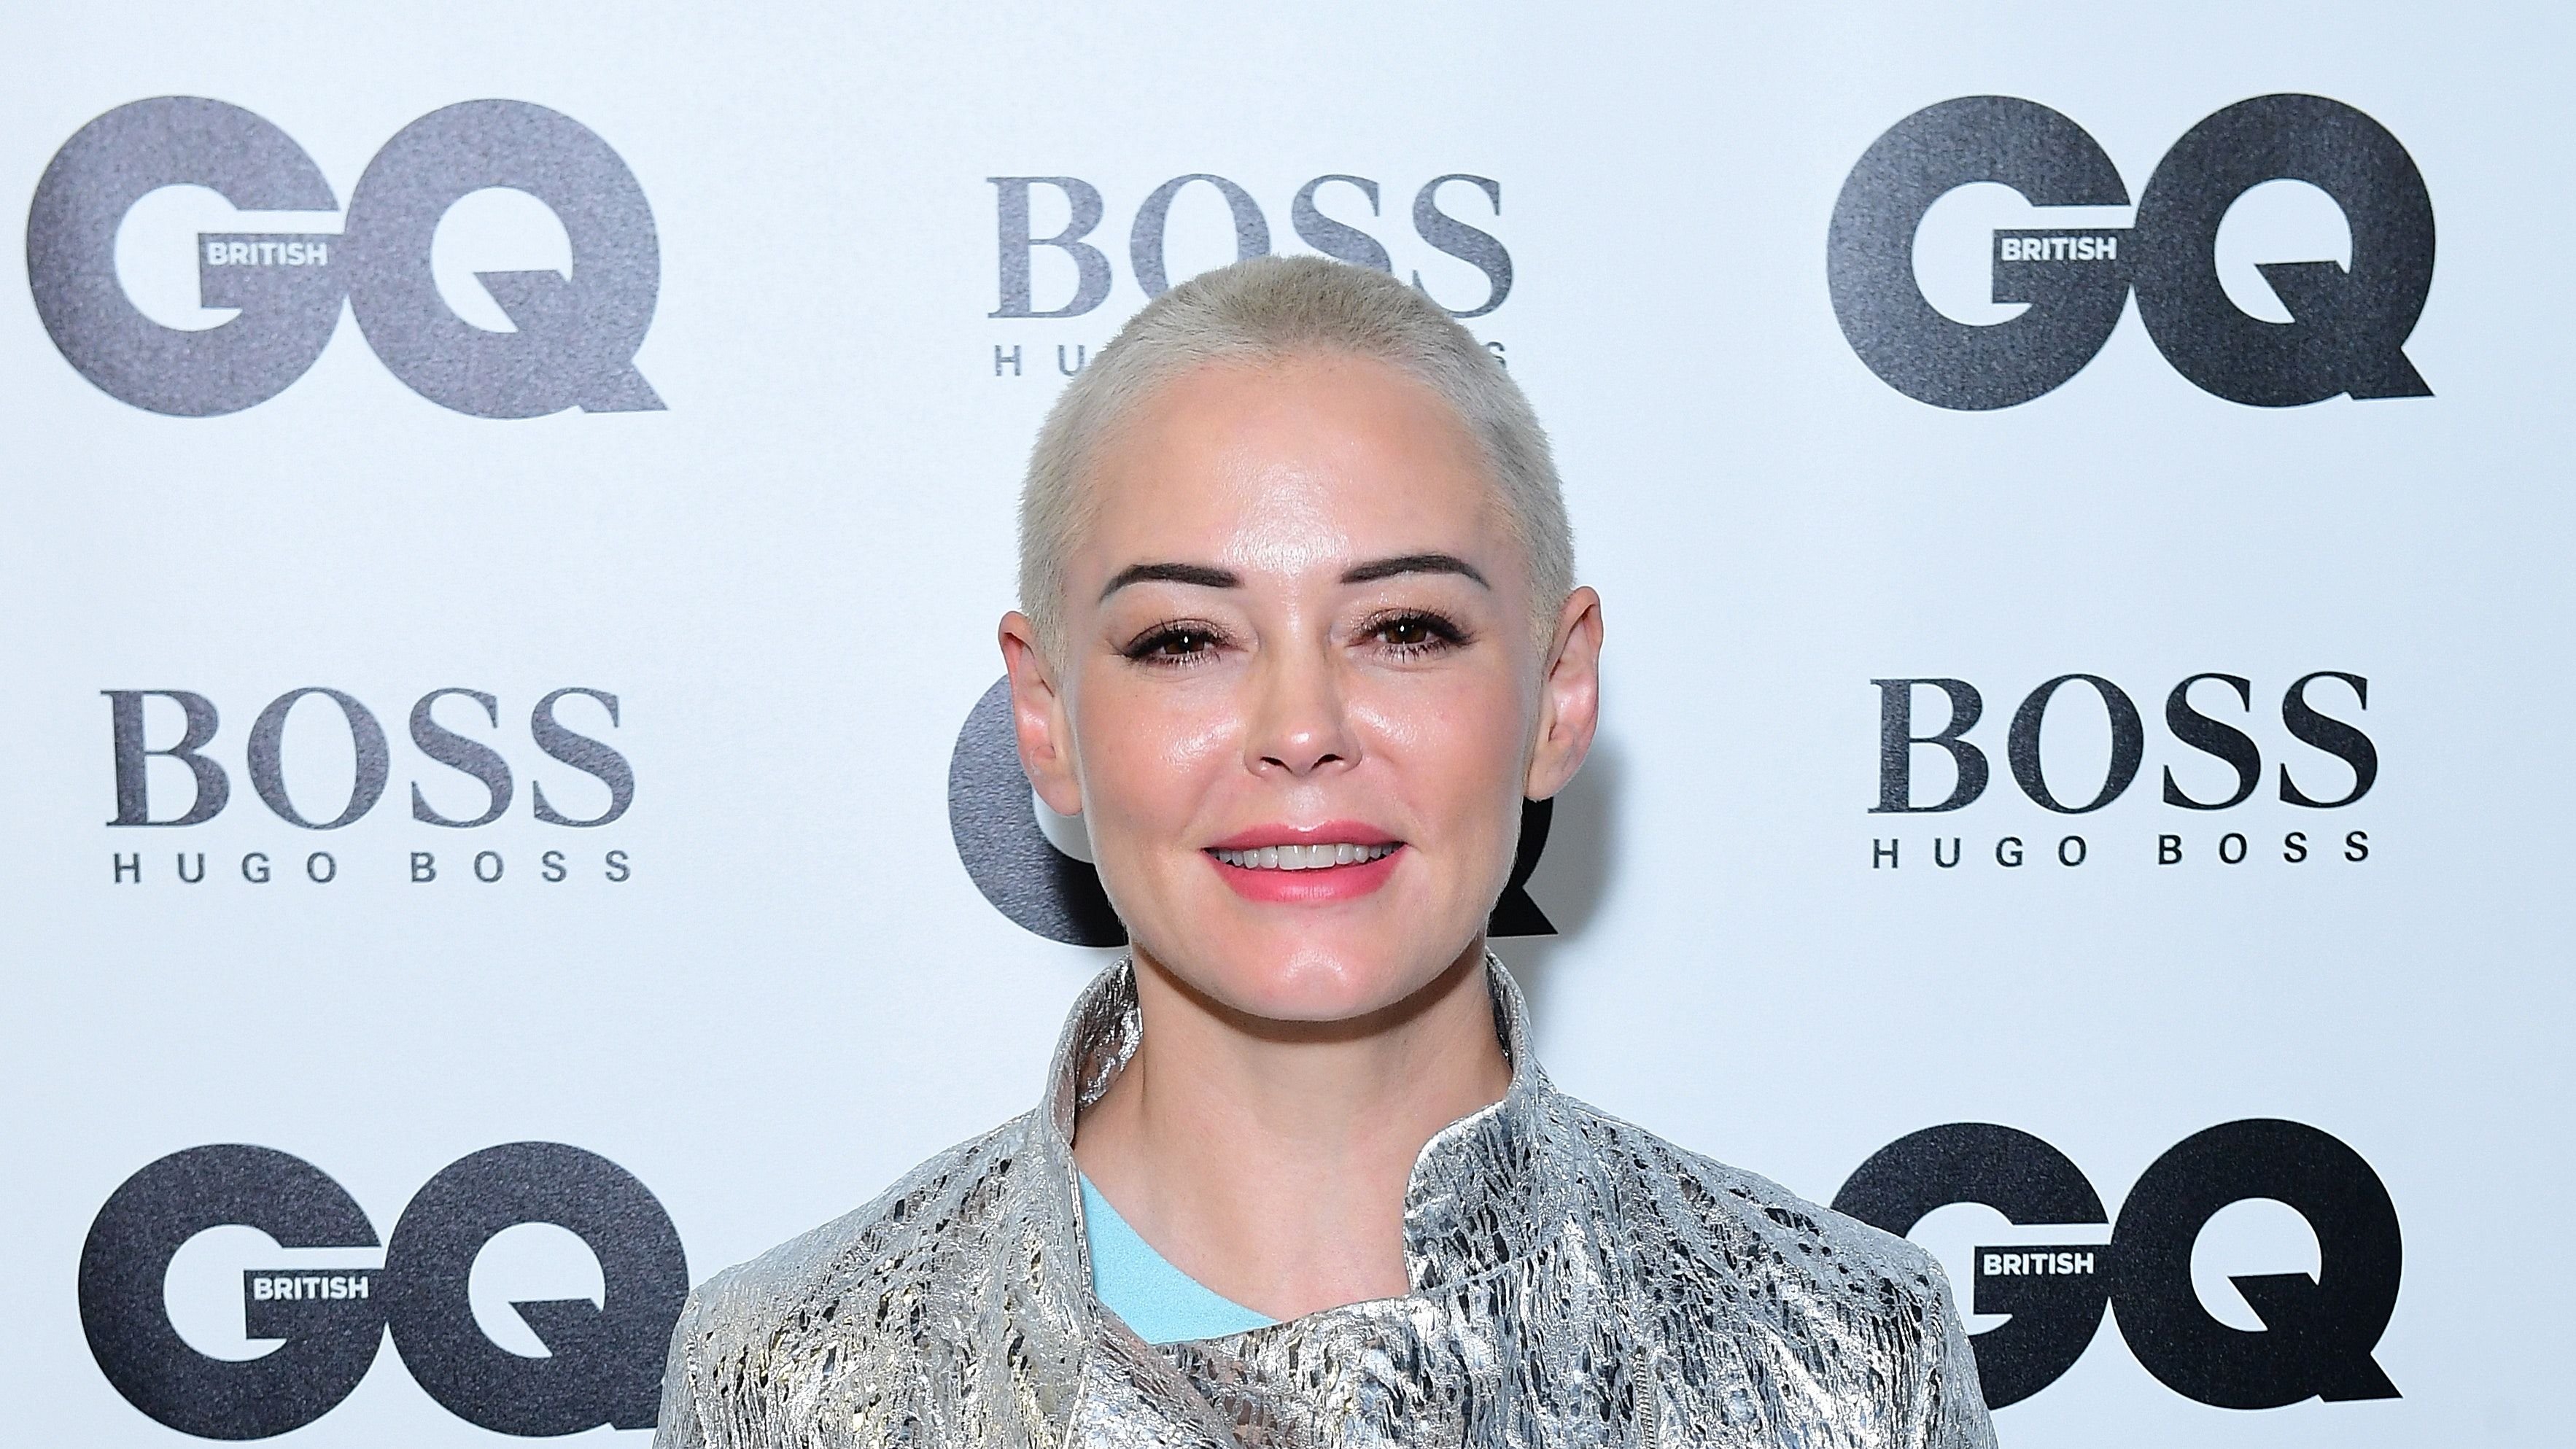 Excellent Rose mcgowan com seems excellent